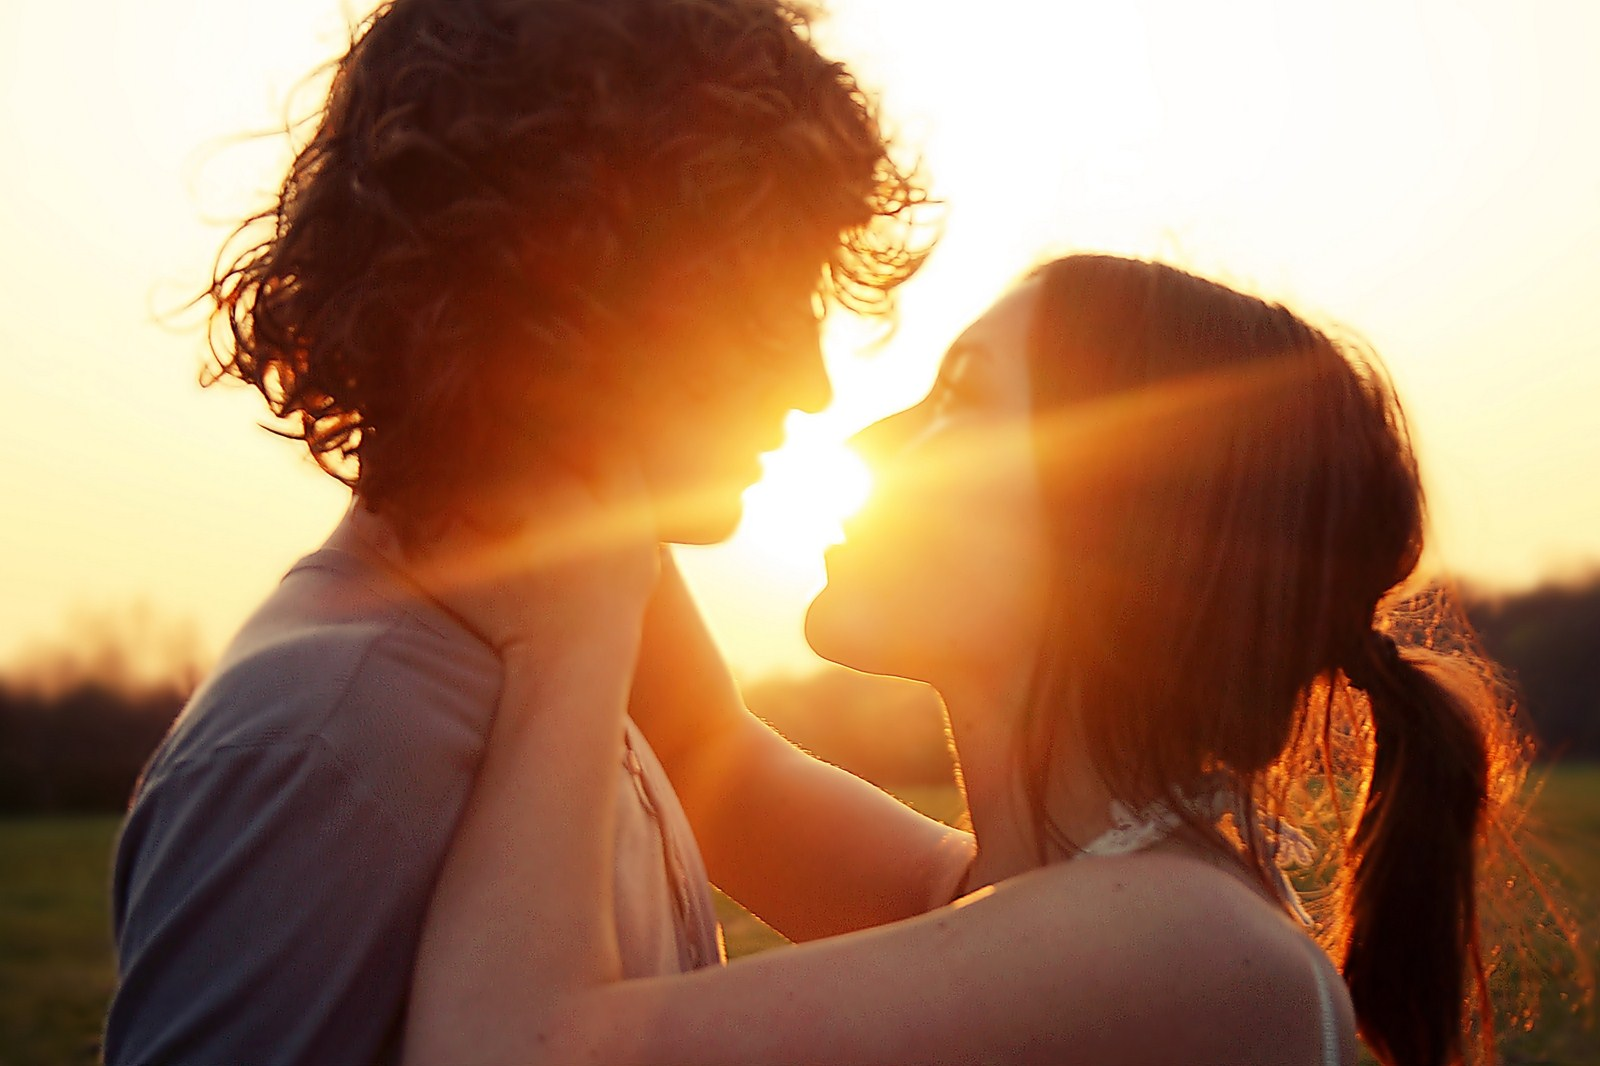 Wallpaper Images Love couple : Sun Summer Love couple Magic Moment Mood Romance Photo HD Wallpaper Love Wallpapers Romantic ...